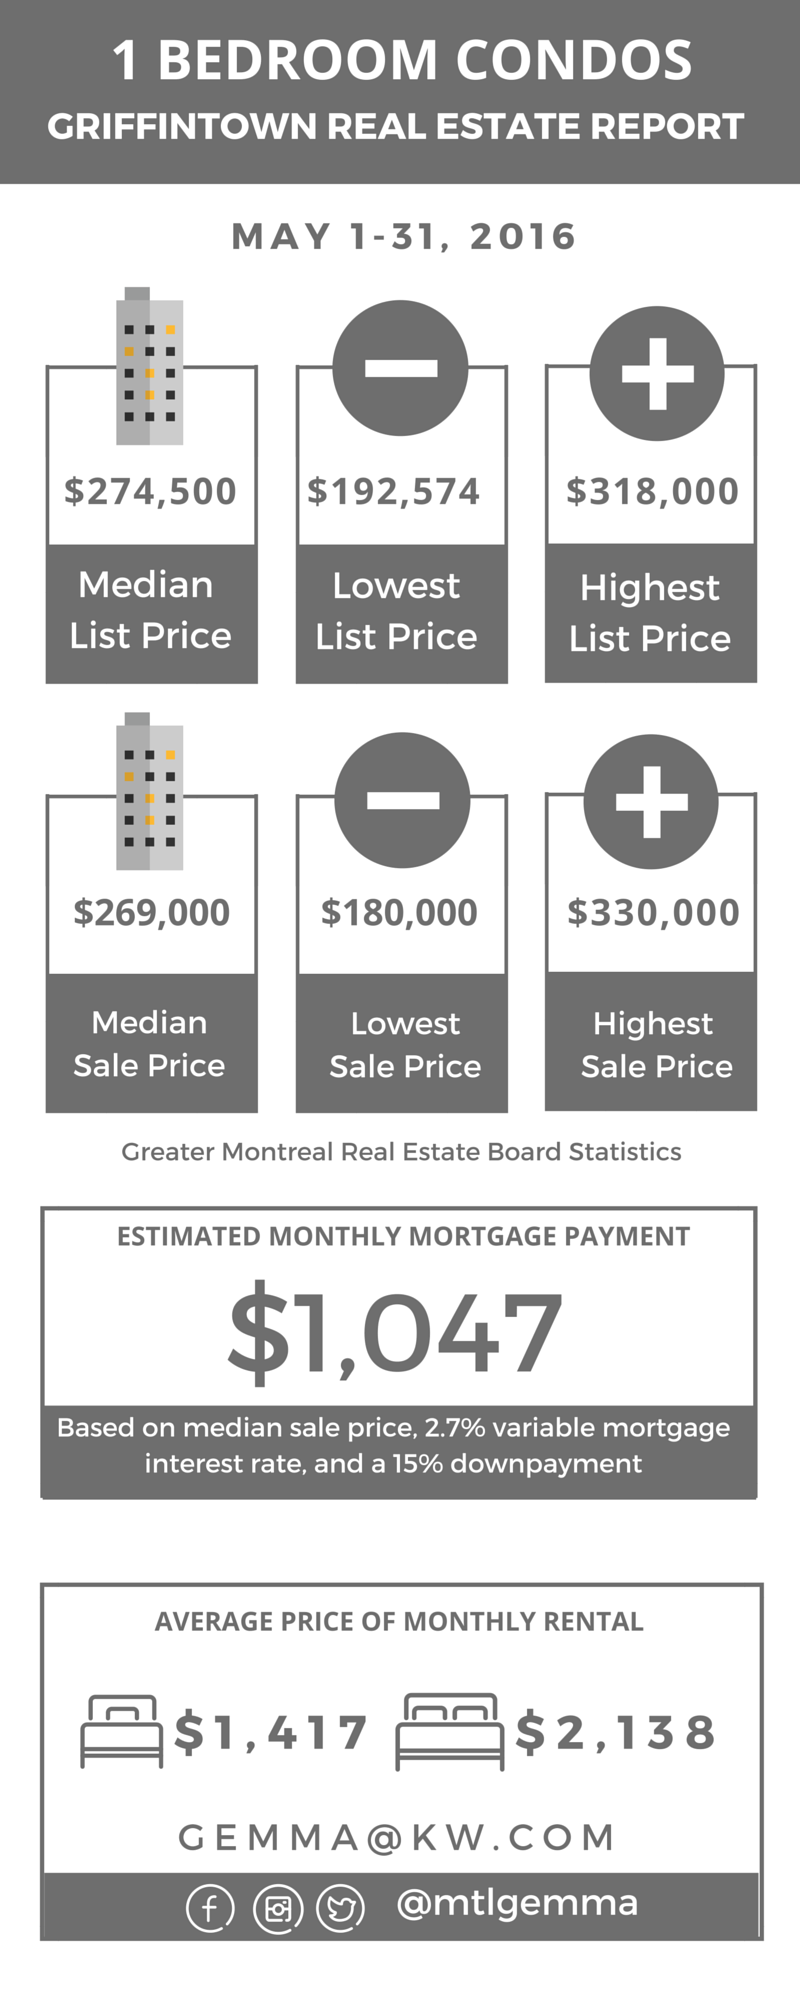 Griffintown Real Estate Market Report 2016 02